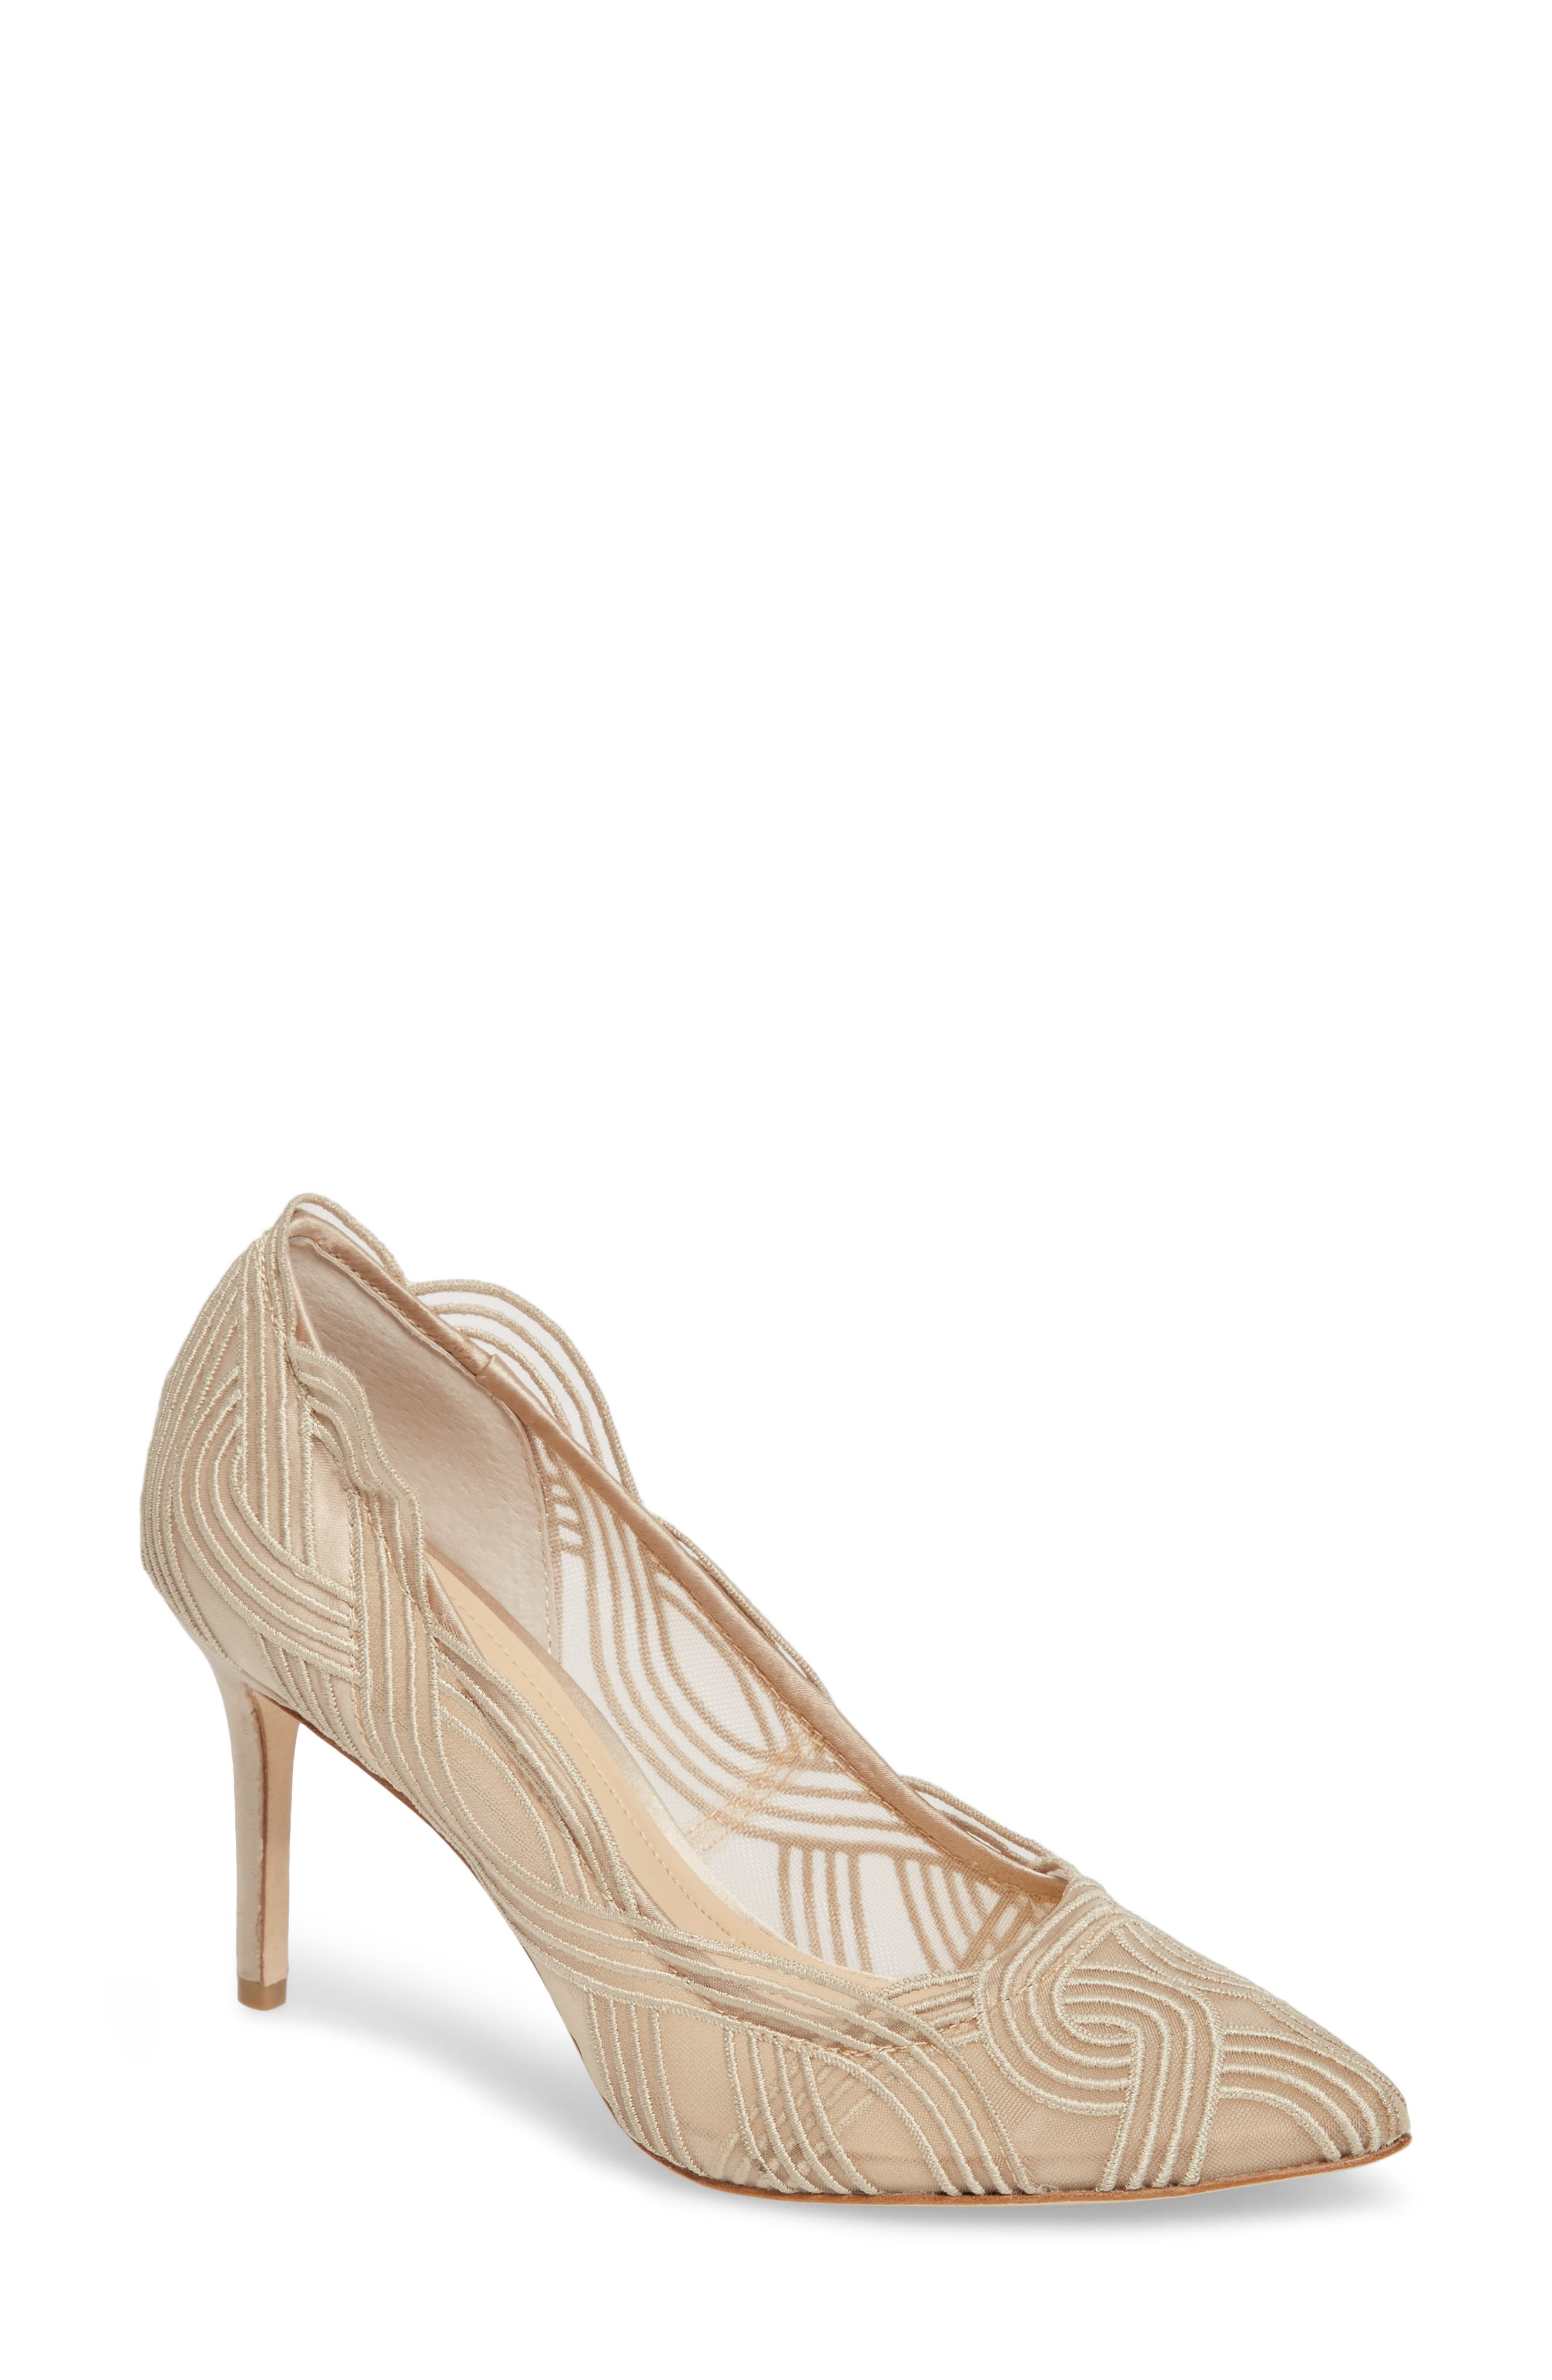 Imagine Vince Camuto Maeson Textured Mesh Pump,                             Main thumbnail 1, color,                             Light Sand Mesh